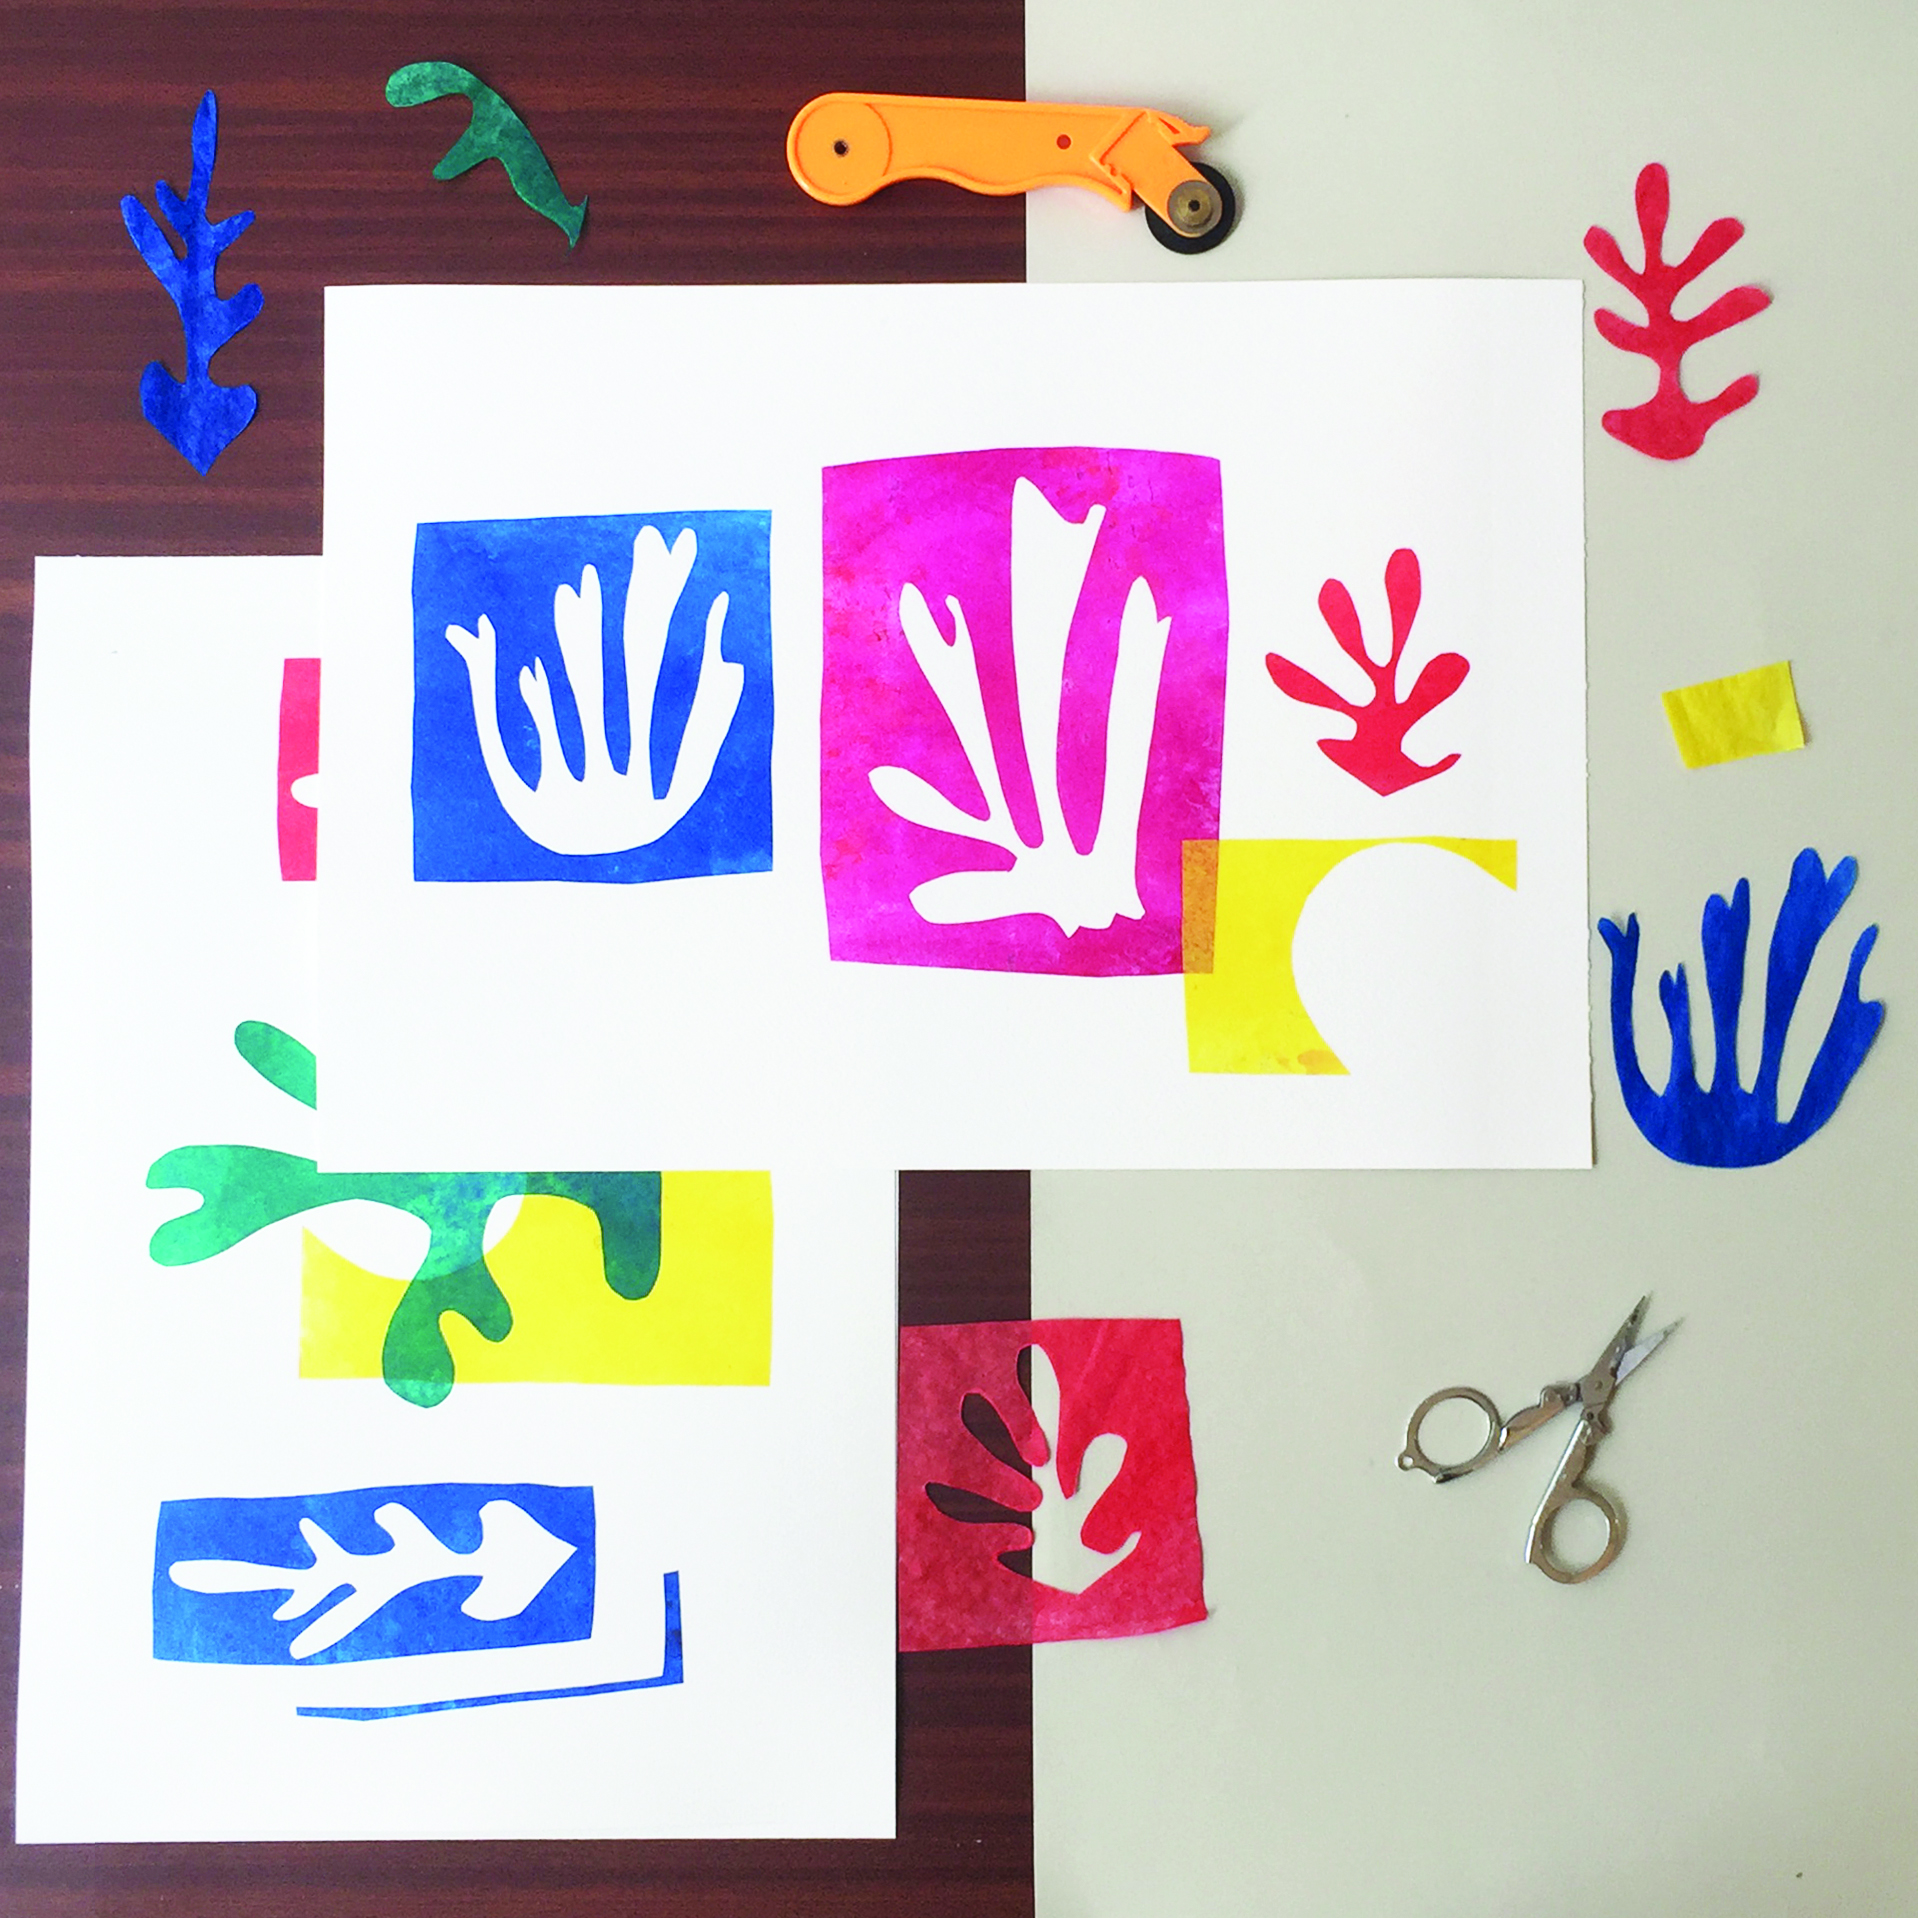 Express Collage Workshop with Gabriela Szulman - 11.00 - 12.00Empress Mews Studios, 6 Empress Mews, Off Kenbury Street, SE5 9BTJoin mixed media artist Gabriela Szulman in her studio for an express collage workshop inspired by Matisse's cut-outs. You will learn a very simple technique for which no experience or artistic ability is necessary. All materials are provided£20 single, £35 double - BOOK HERE